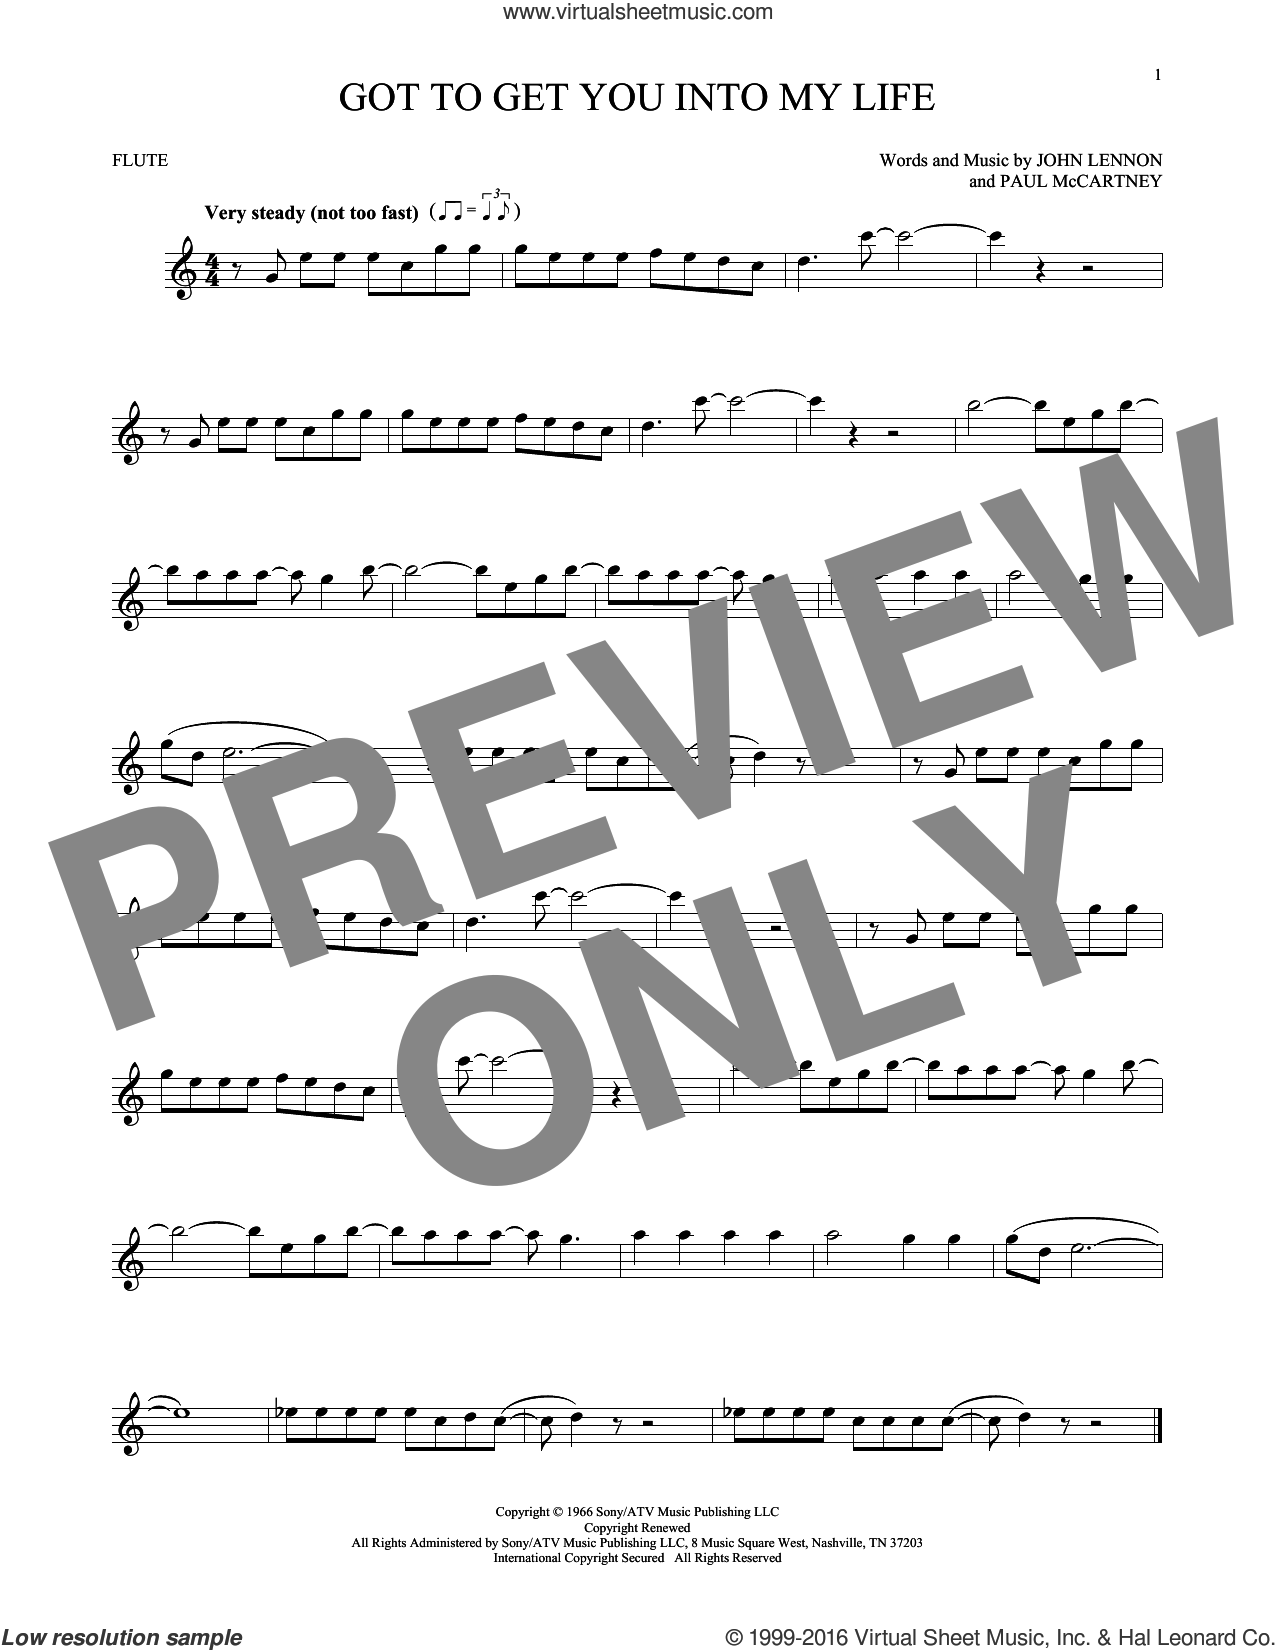 Got To Get You Into My Life sheet music for flute solo by The Beatles, John Lennon and Paul McCartney, intermediate flute. Score Image Preview.